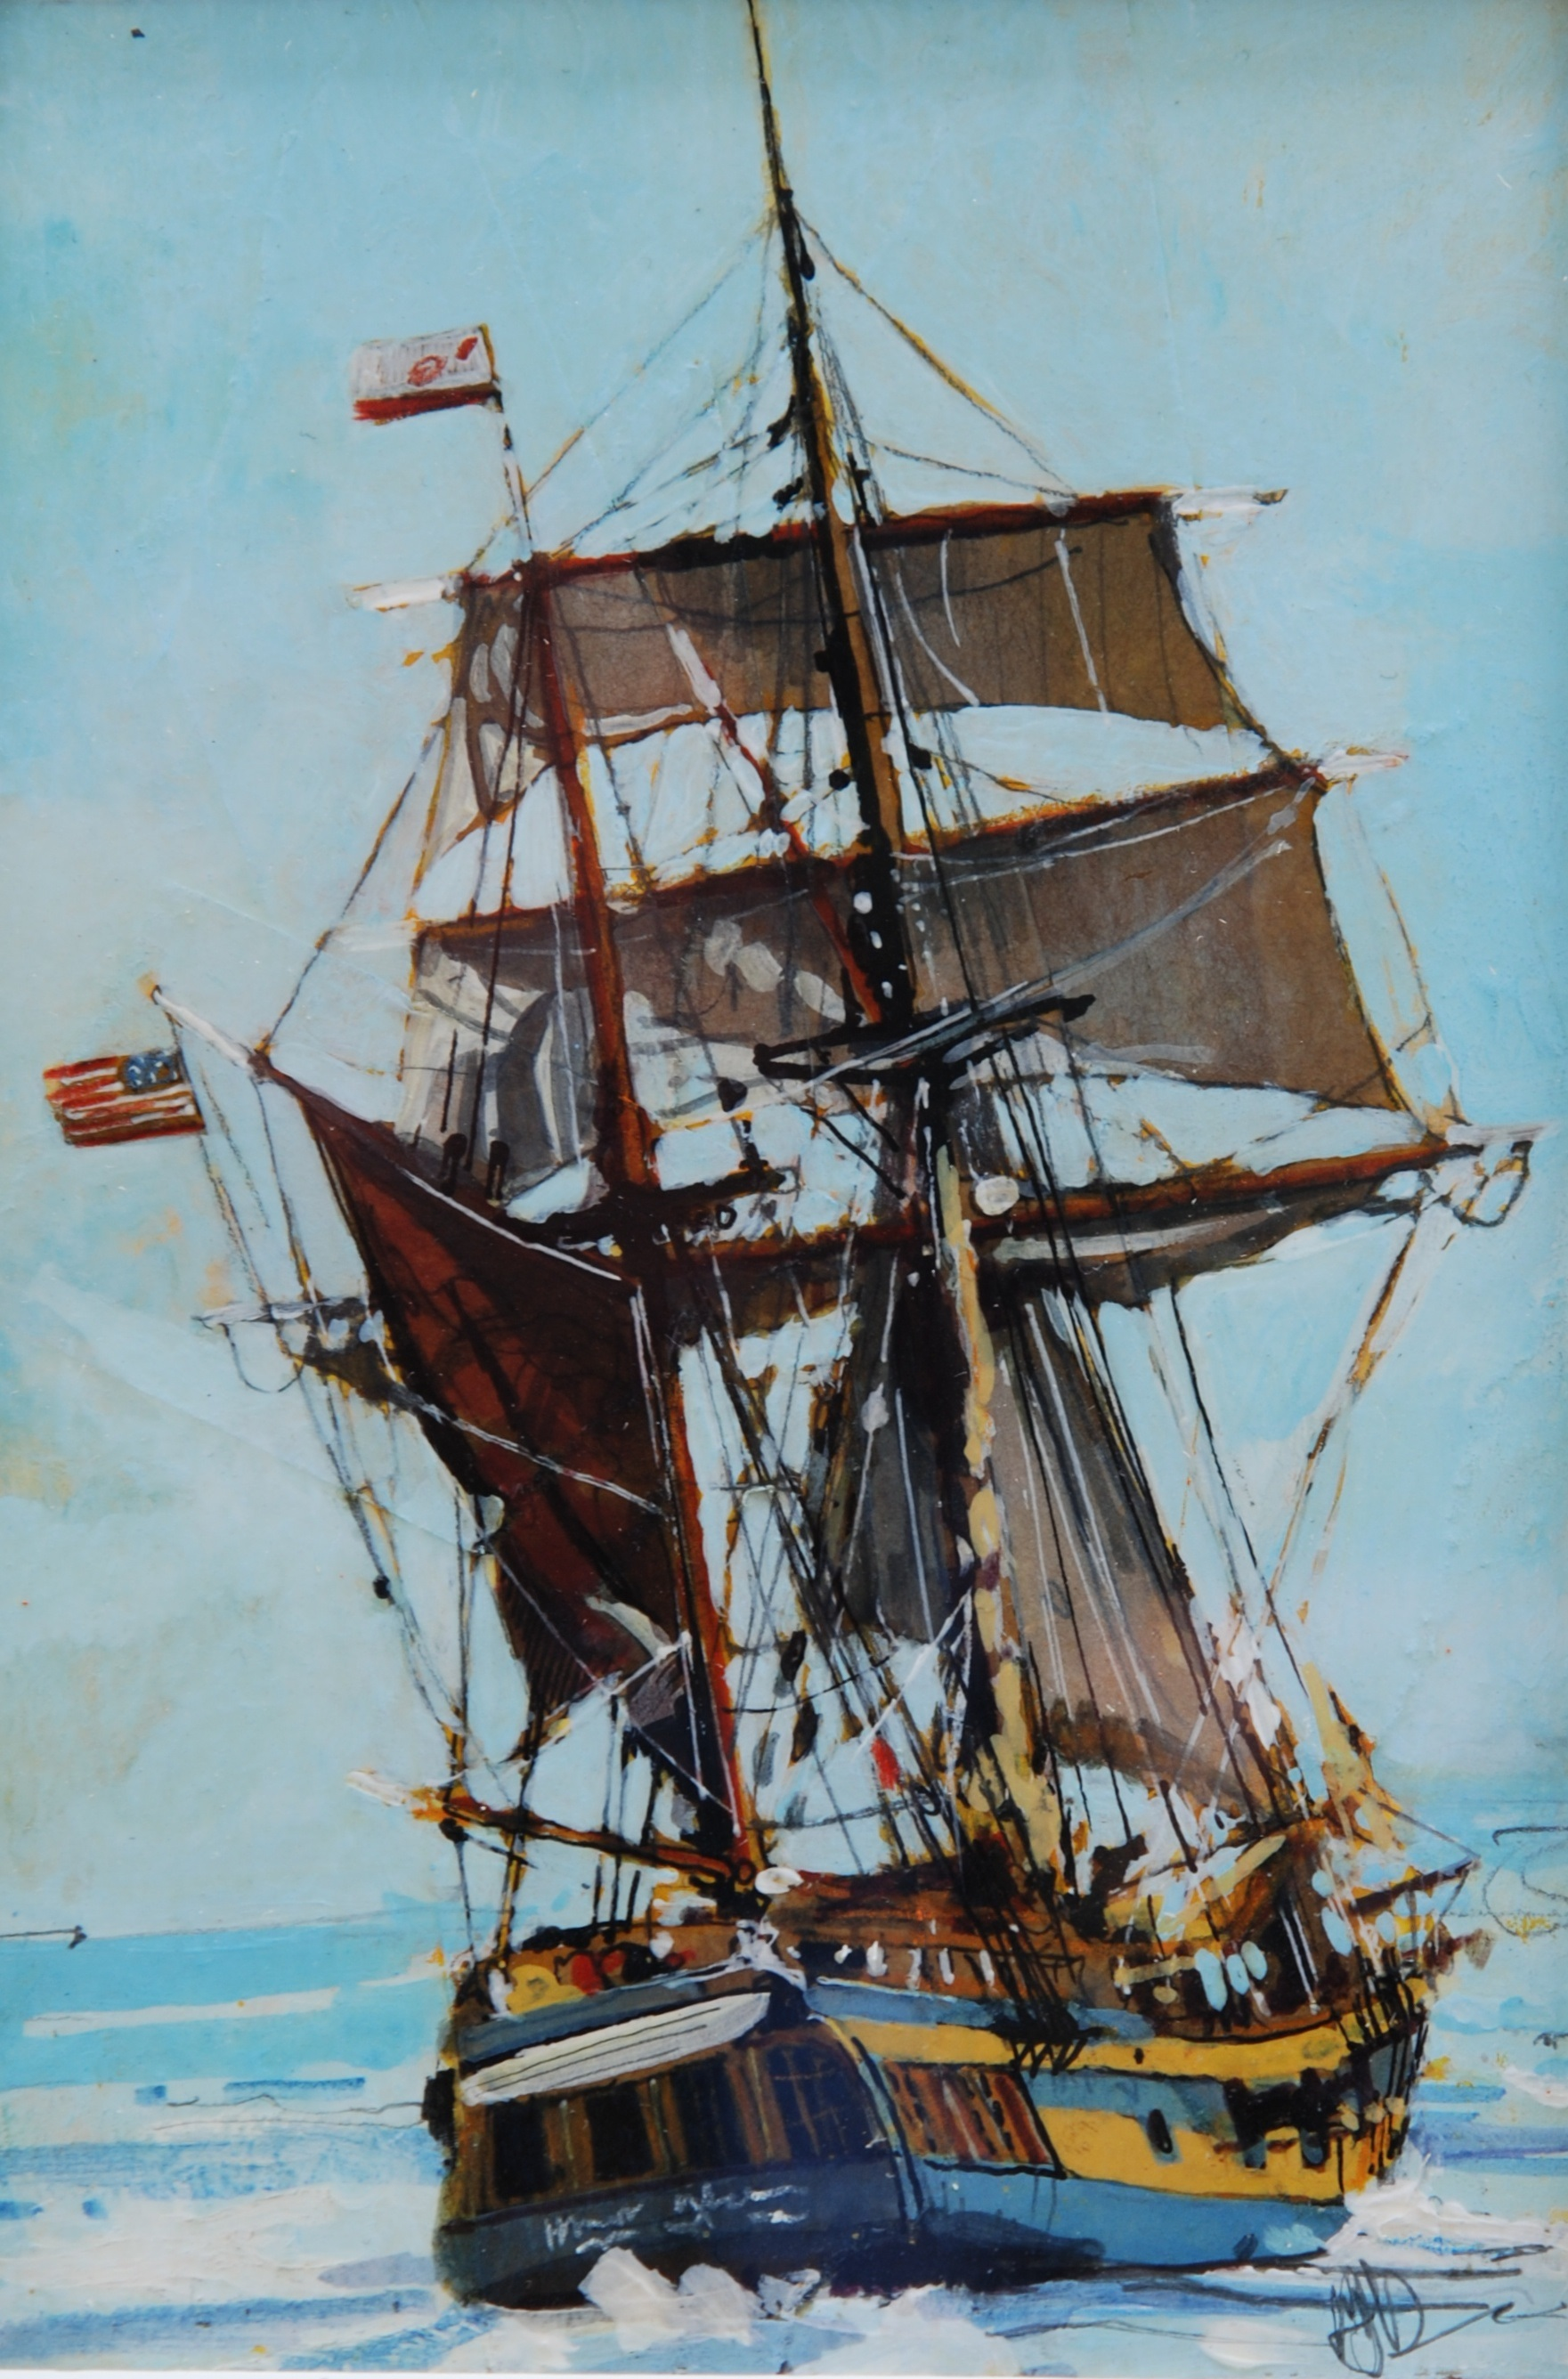 'Ship at Sea' by artist Malcolm Cheape